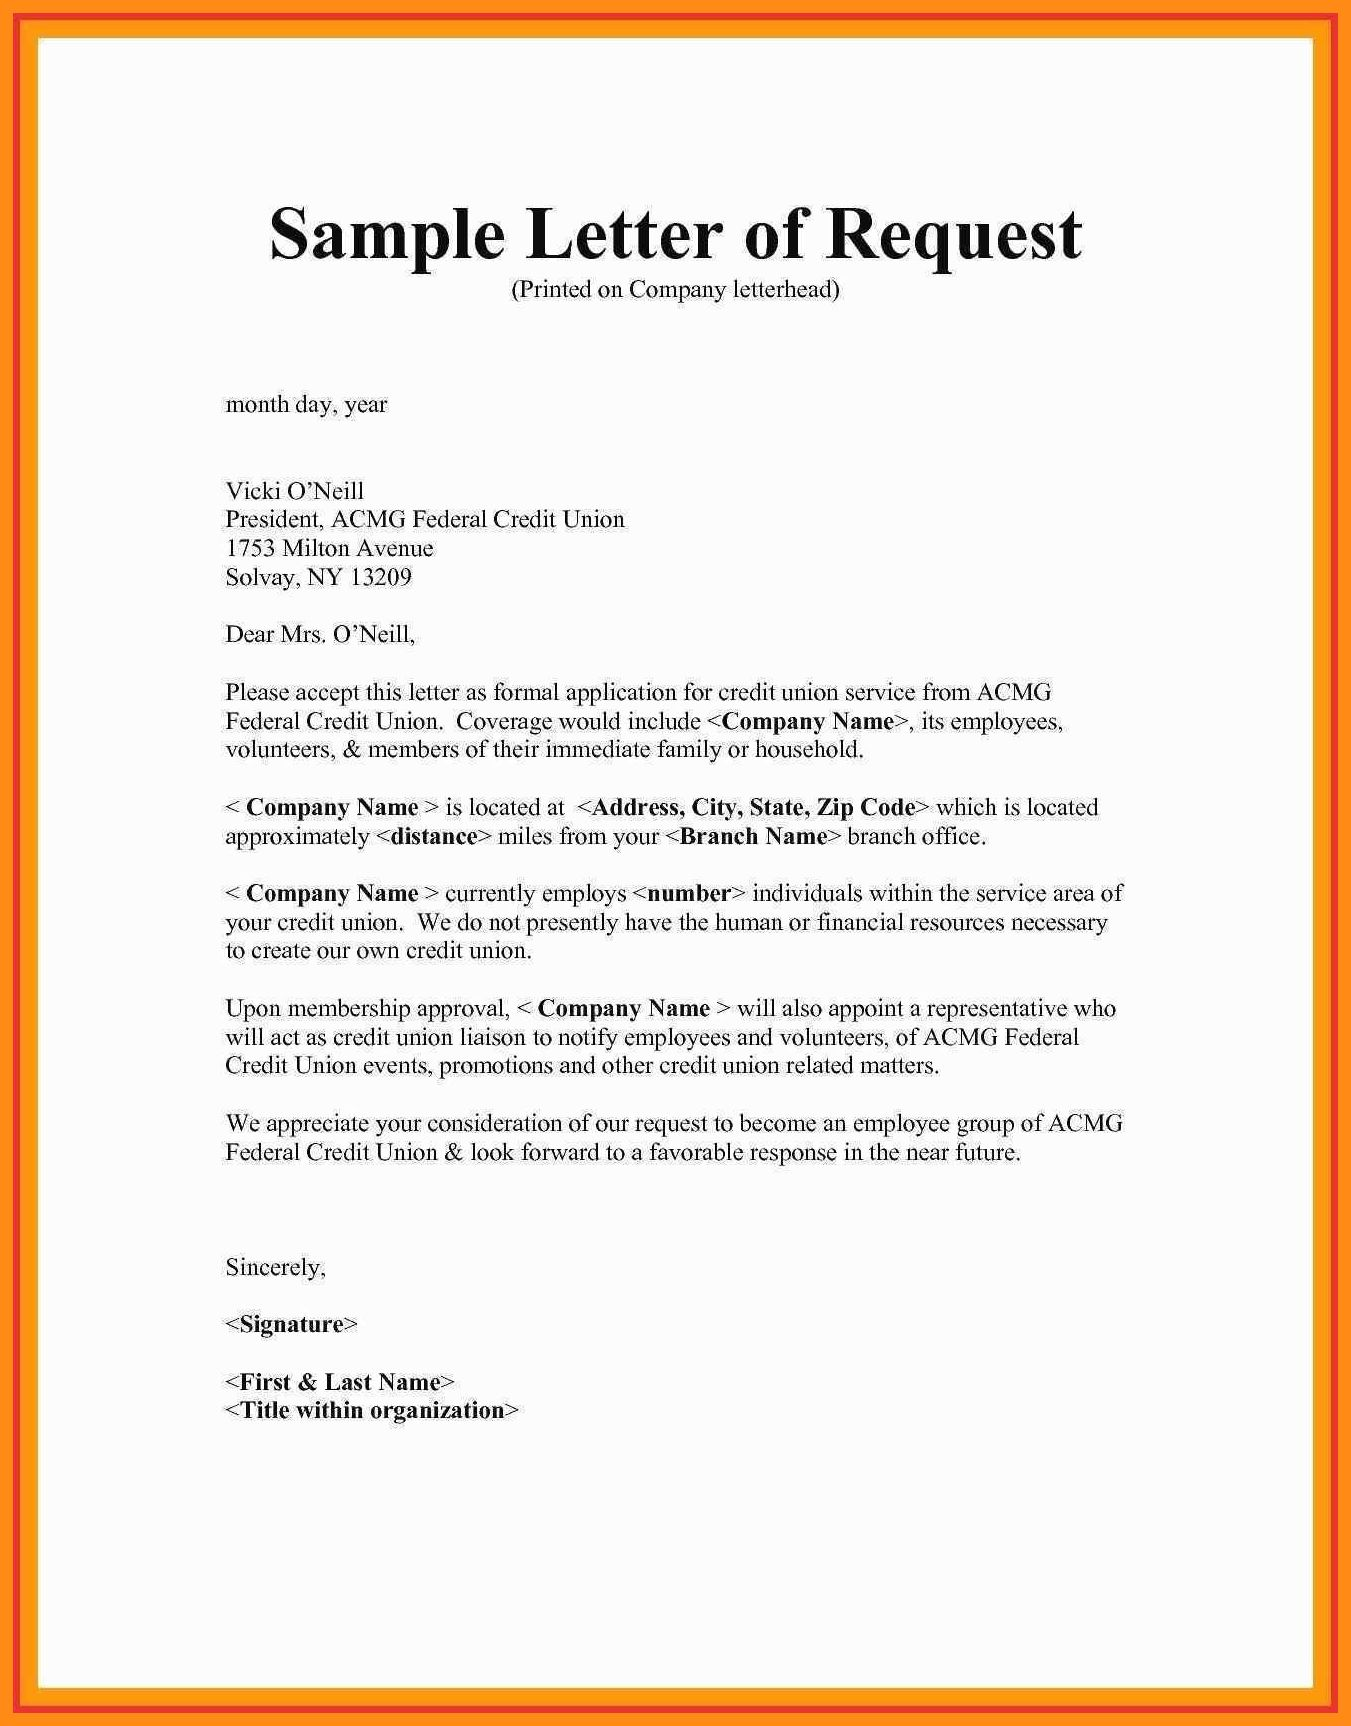 Salary Increase Request Letters Elainegalindo Inside Request For